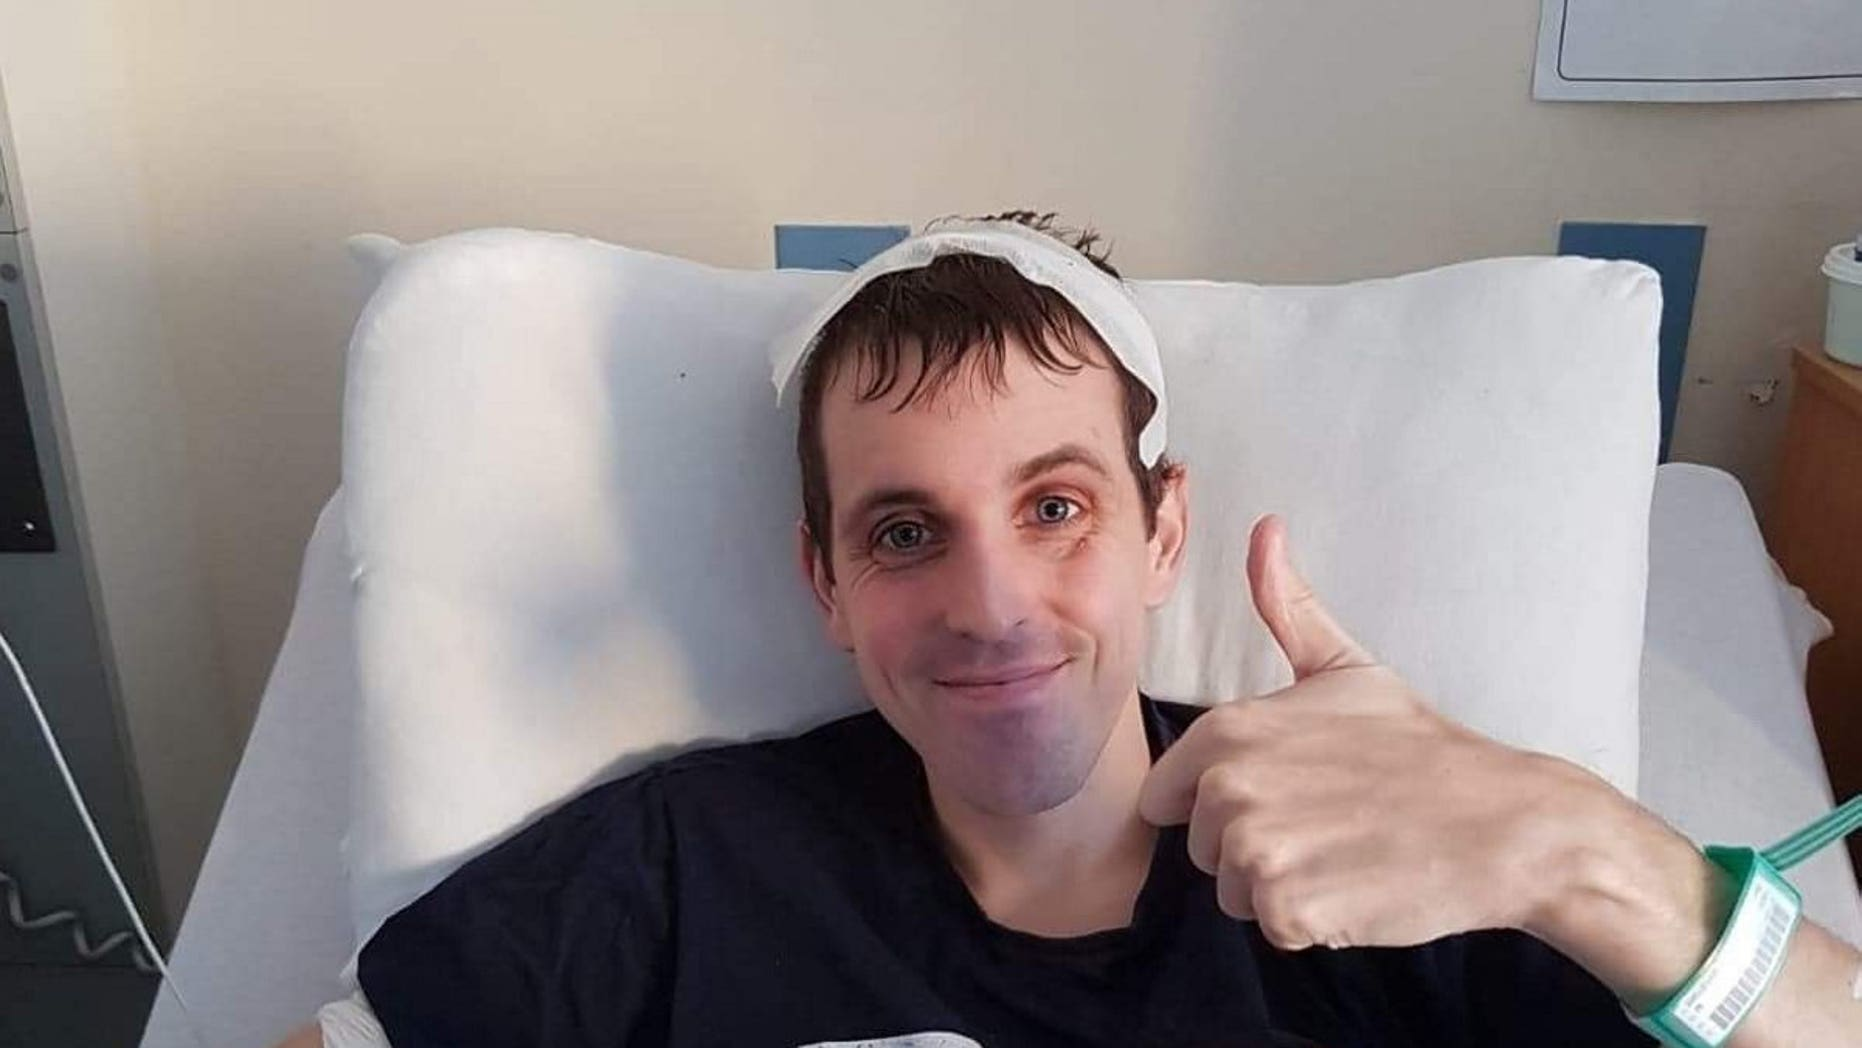 Collect of Barry Reid, 32, from Ayr, at Glasgow's Queen Elizabeth Hospital. Mr Reid collapsed at Universal's Volcano Bay Park in Florida while queuing to go on a waterslide- leading to the discovery of a brain tumour.. See Centre Press story CPTUMOUR . A dad-of-two has spoken of his holiday horror after he was diagnosed with a brain tumour during a dream family trip to Florida.Barry Reid, his wife Gillian and their two young daughters, along with his in-laws, jetted off to their dream vacation last October. But twelve days into their holiday Barry took a turn for the worst and collapsed at Universal's Volcano Bay Park while queuing to go on a waterslide. When the 32-year-old woke up, he found himself in an ambulance heading to a local A&E wired up to a host of machines.